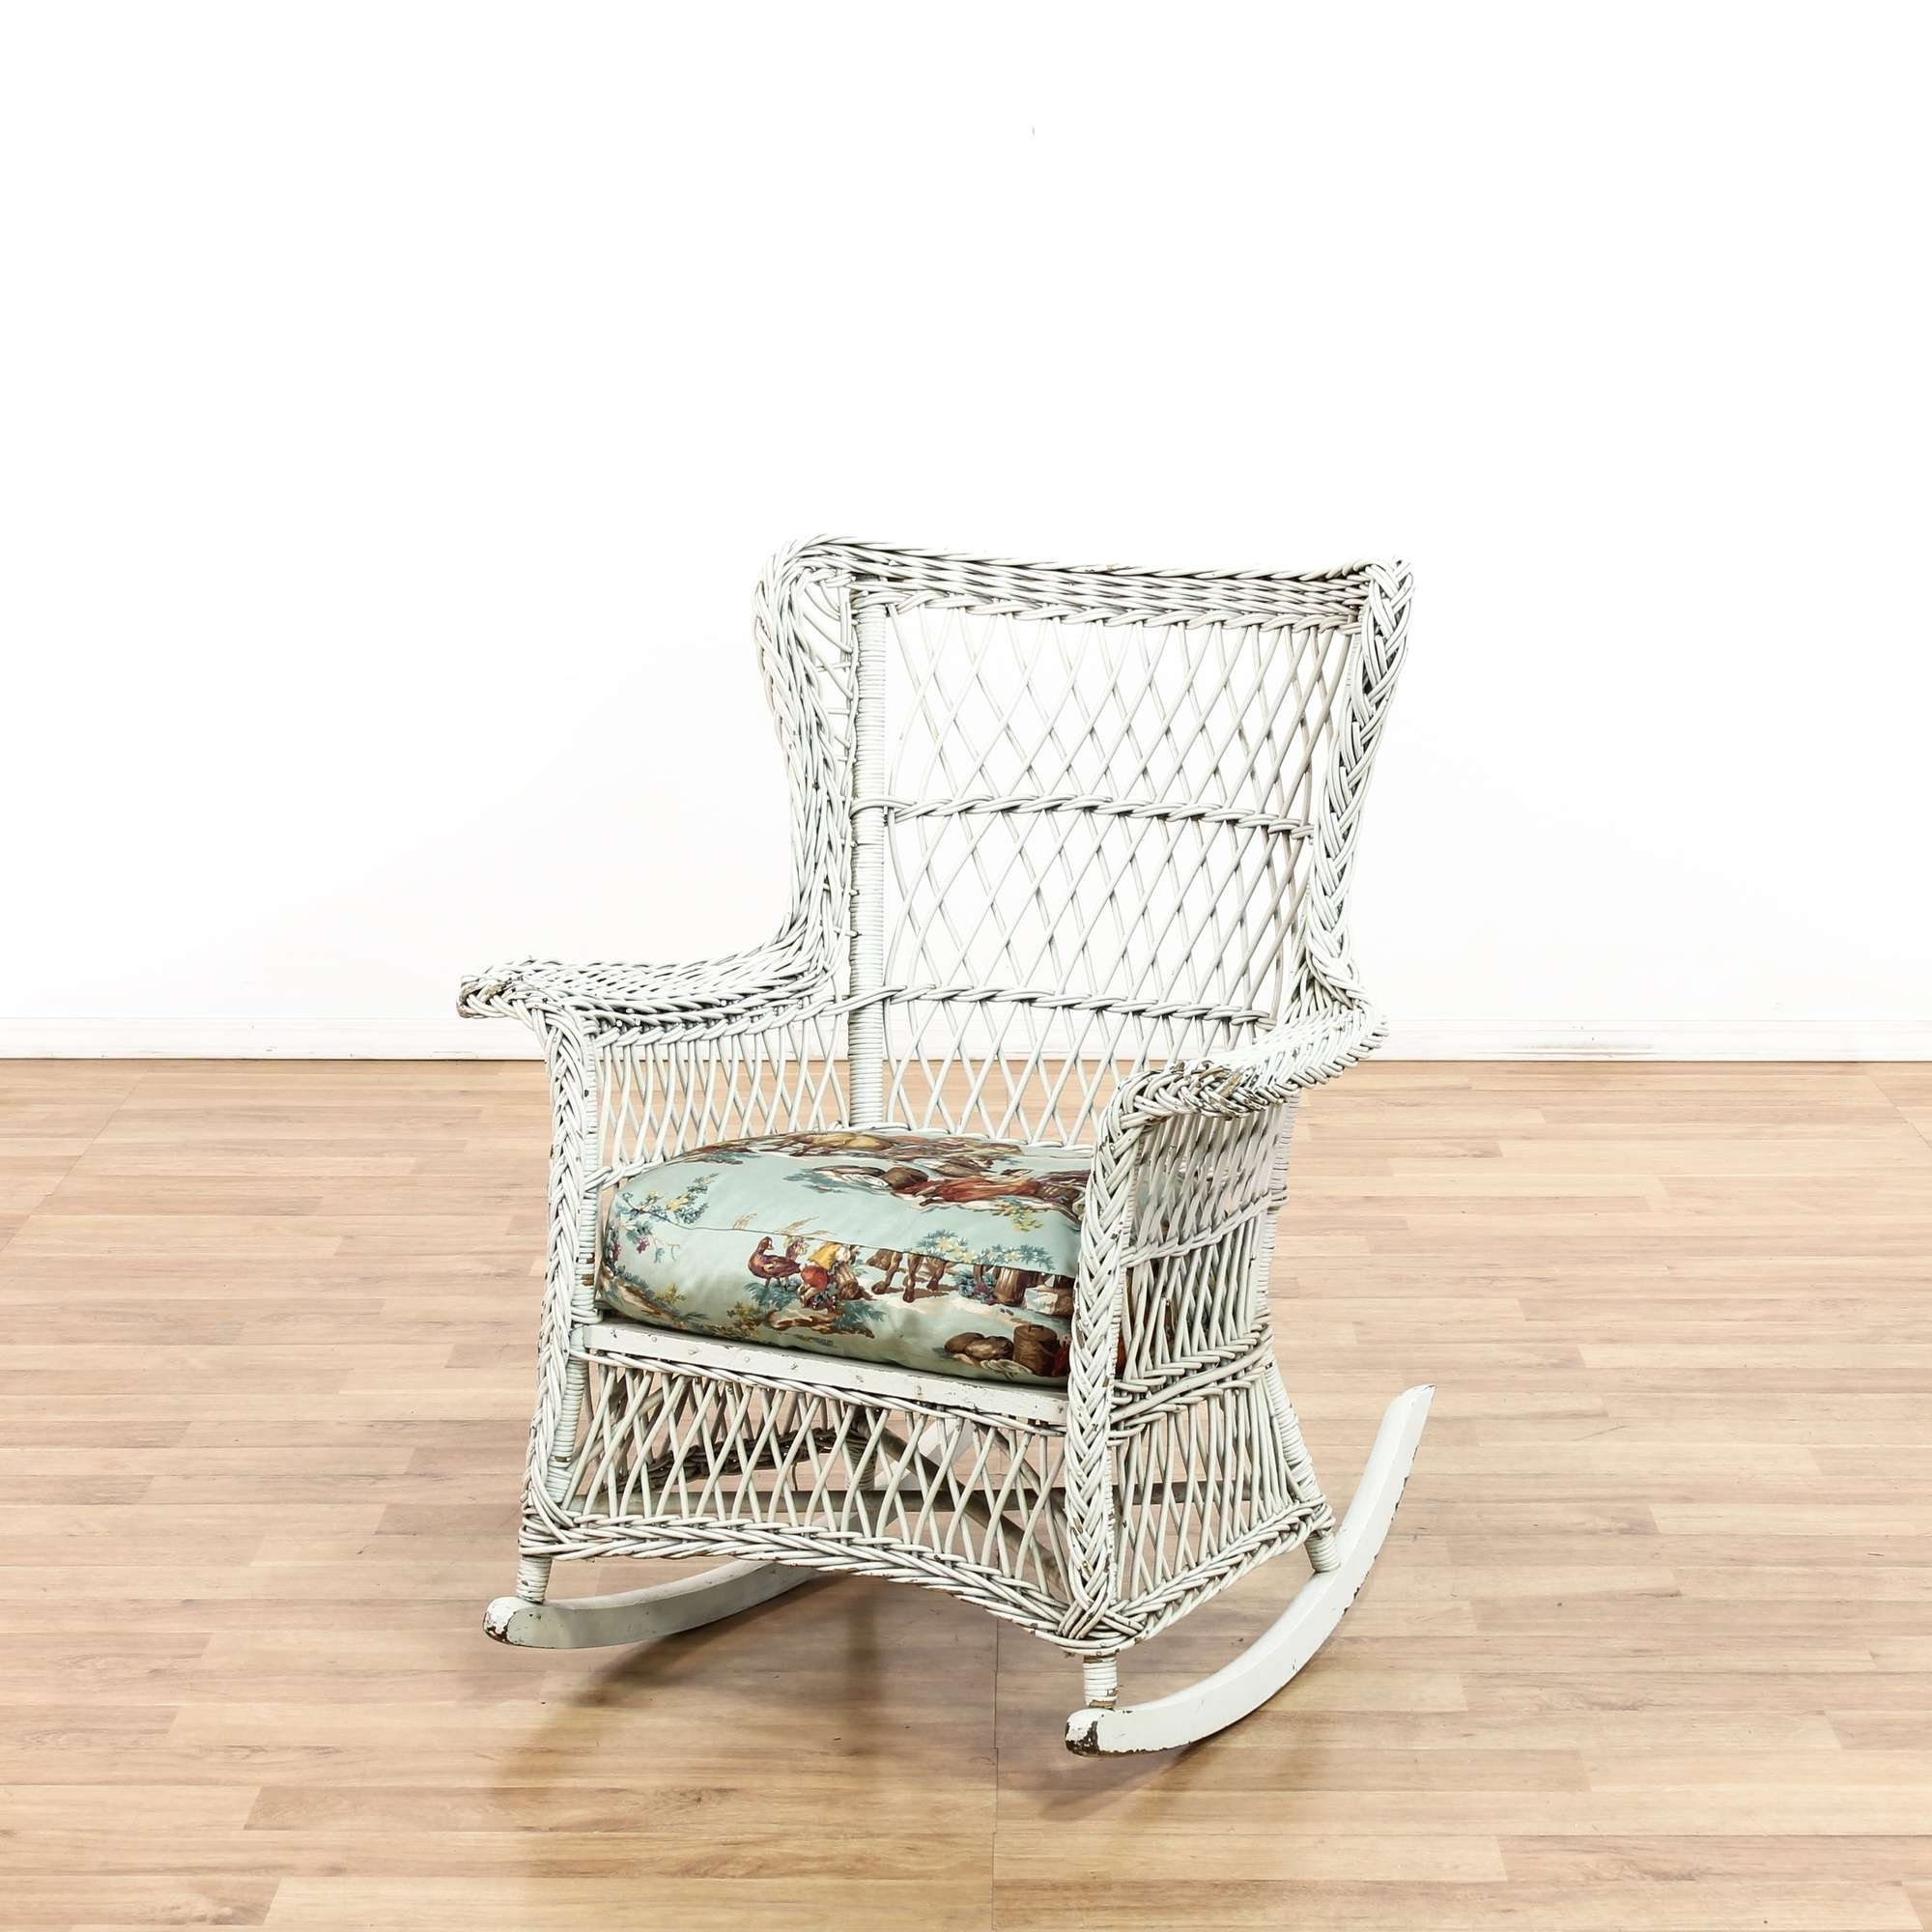 White Wicker Rocking Chair Loveseat Vintage Furniture Los Angeles Inside Preferred White Wicker Rocking Chair For Nursery (View 17 of 20)